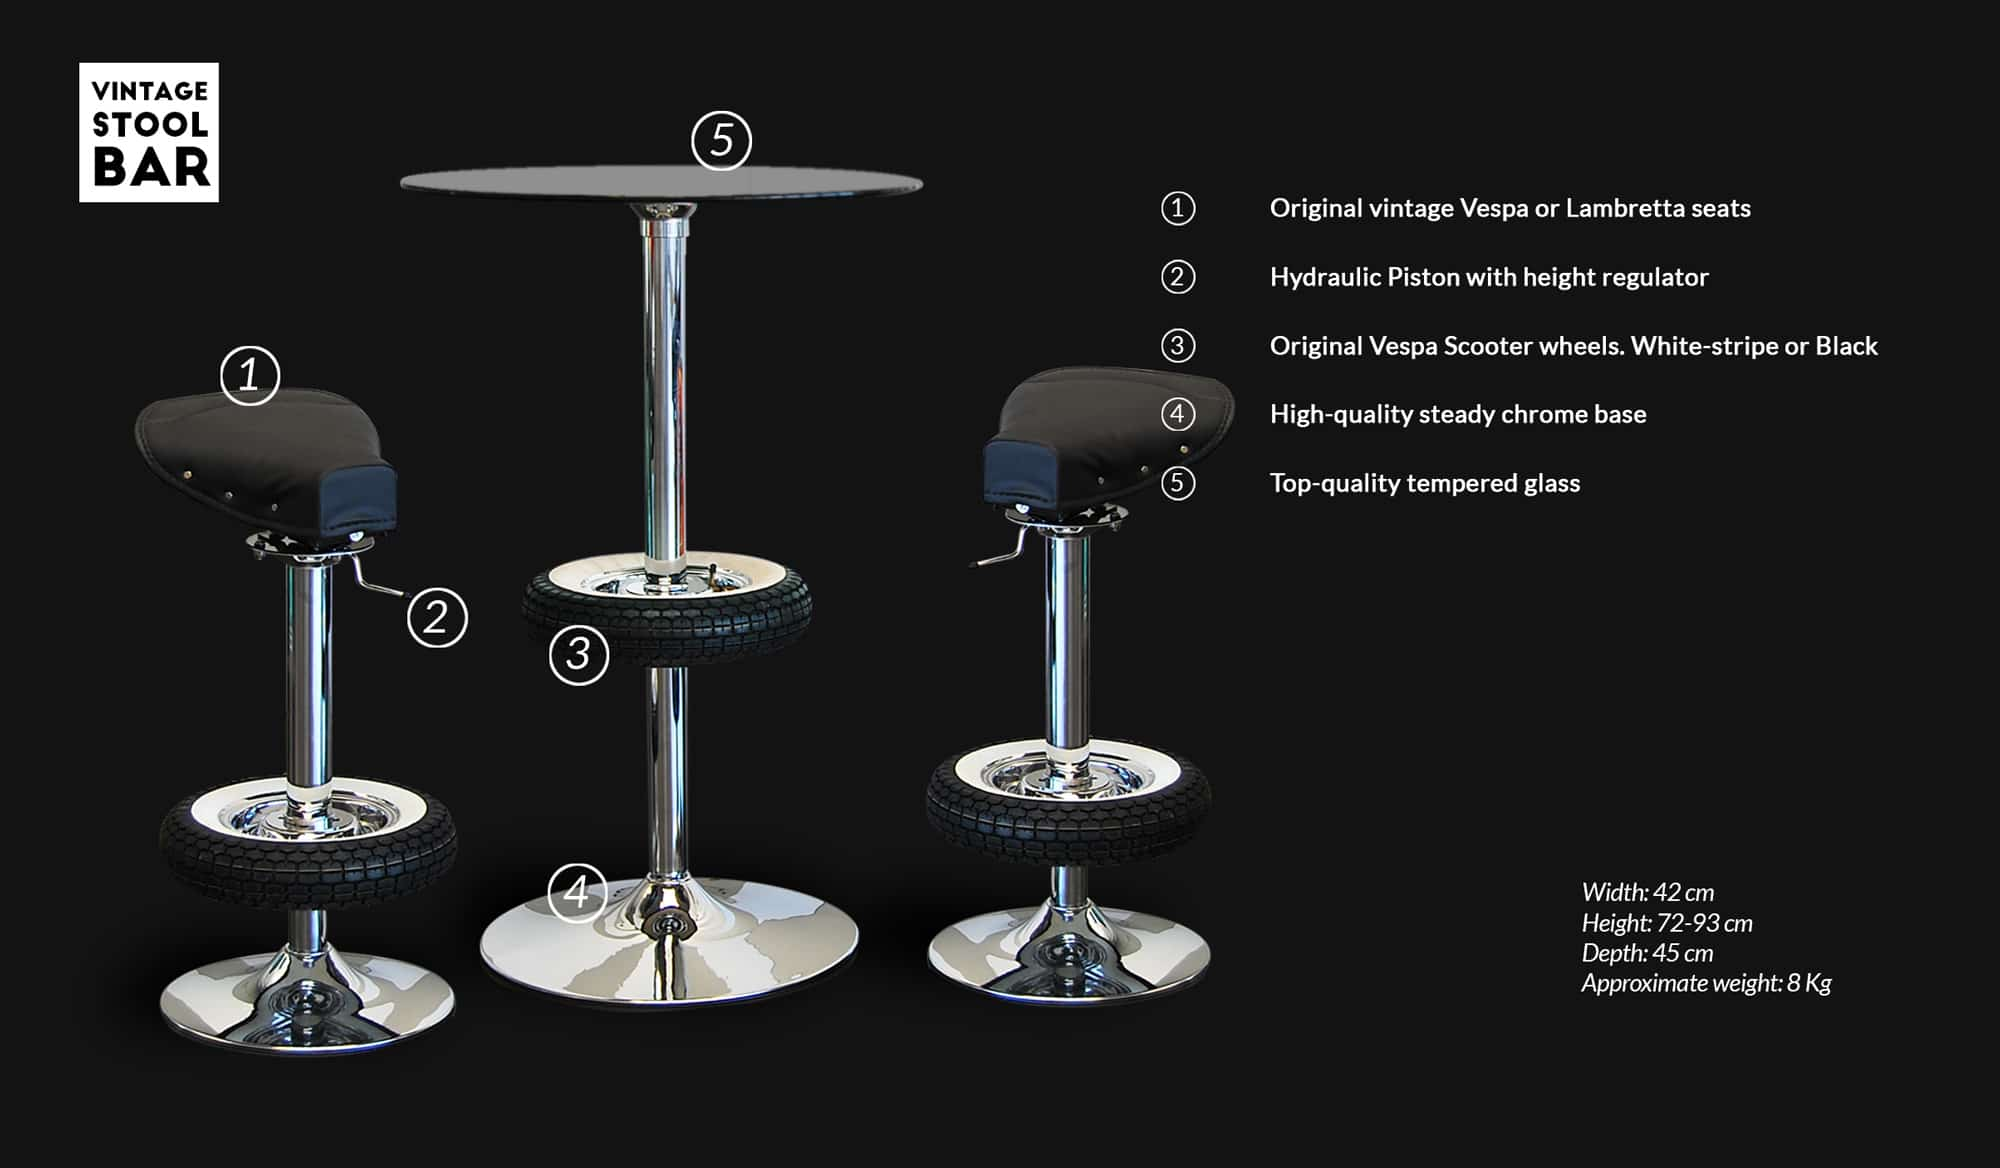 Vintage Stool Technical Specifications